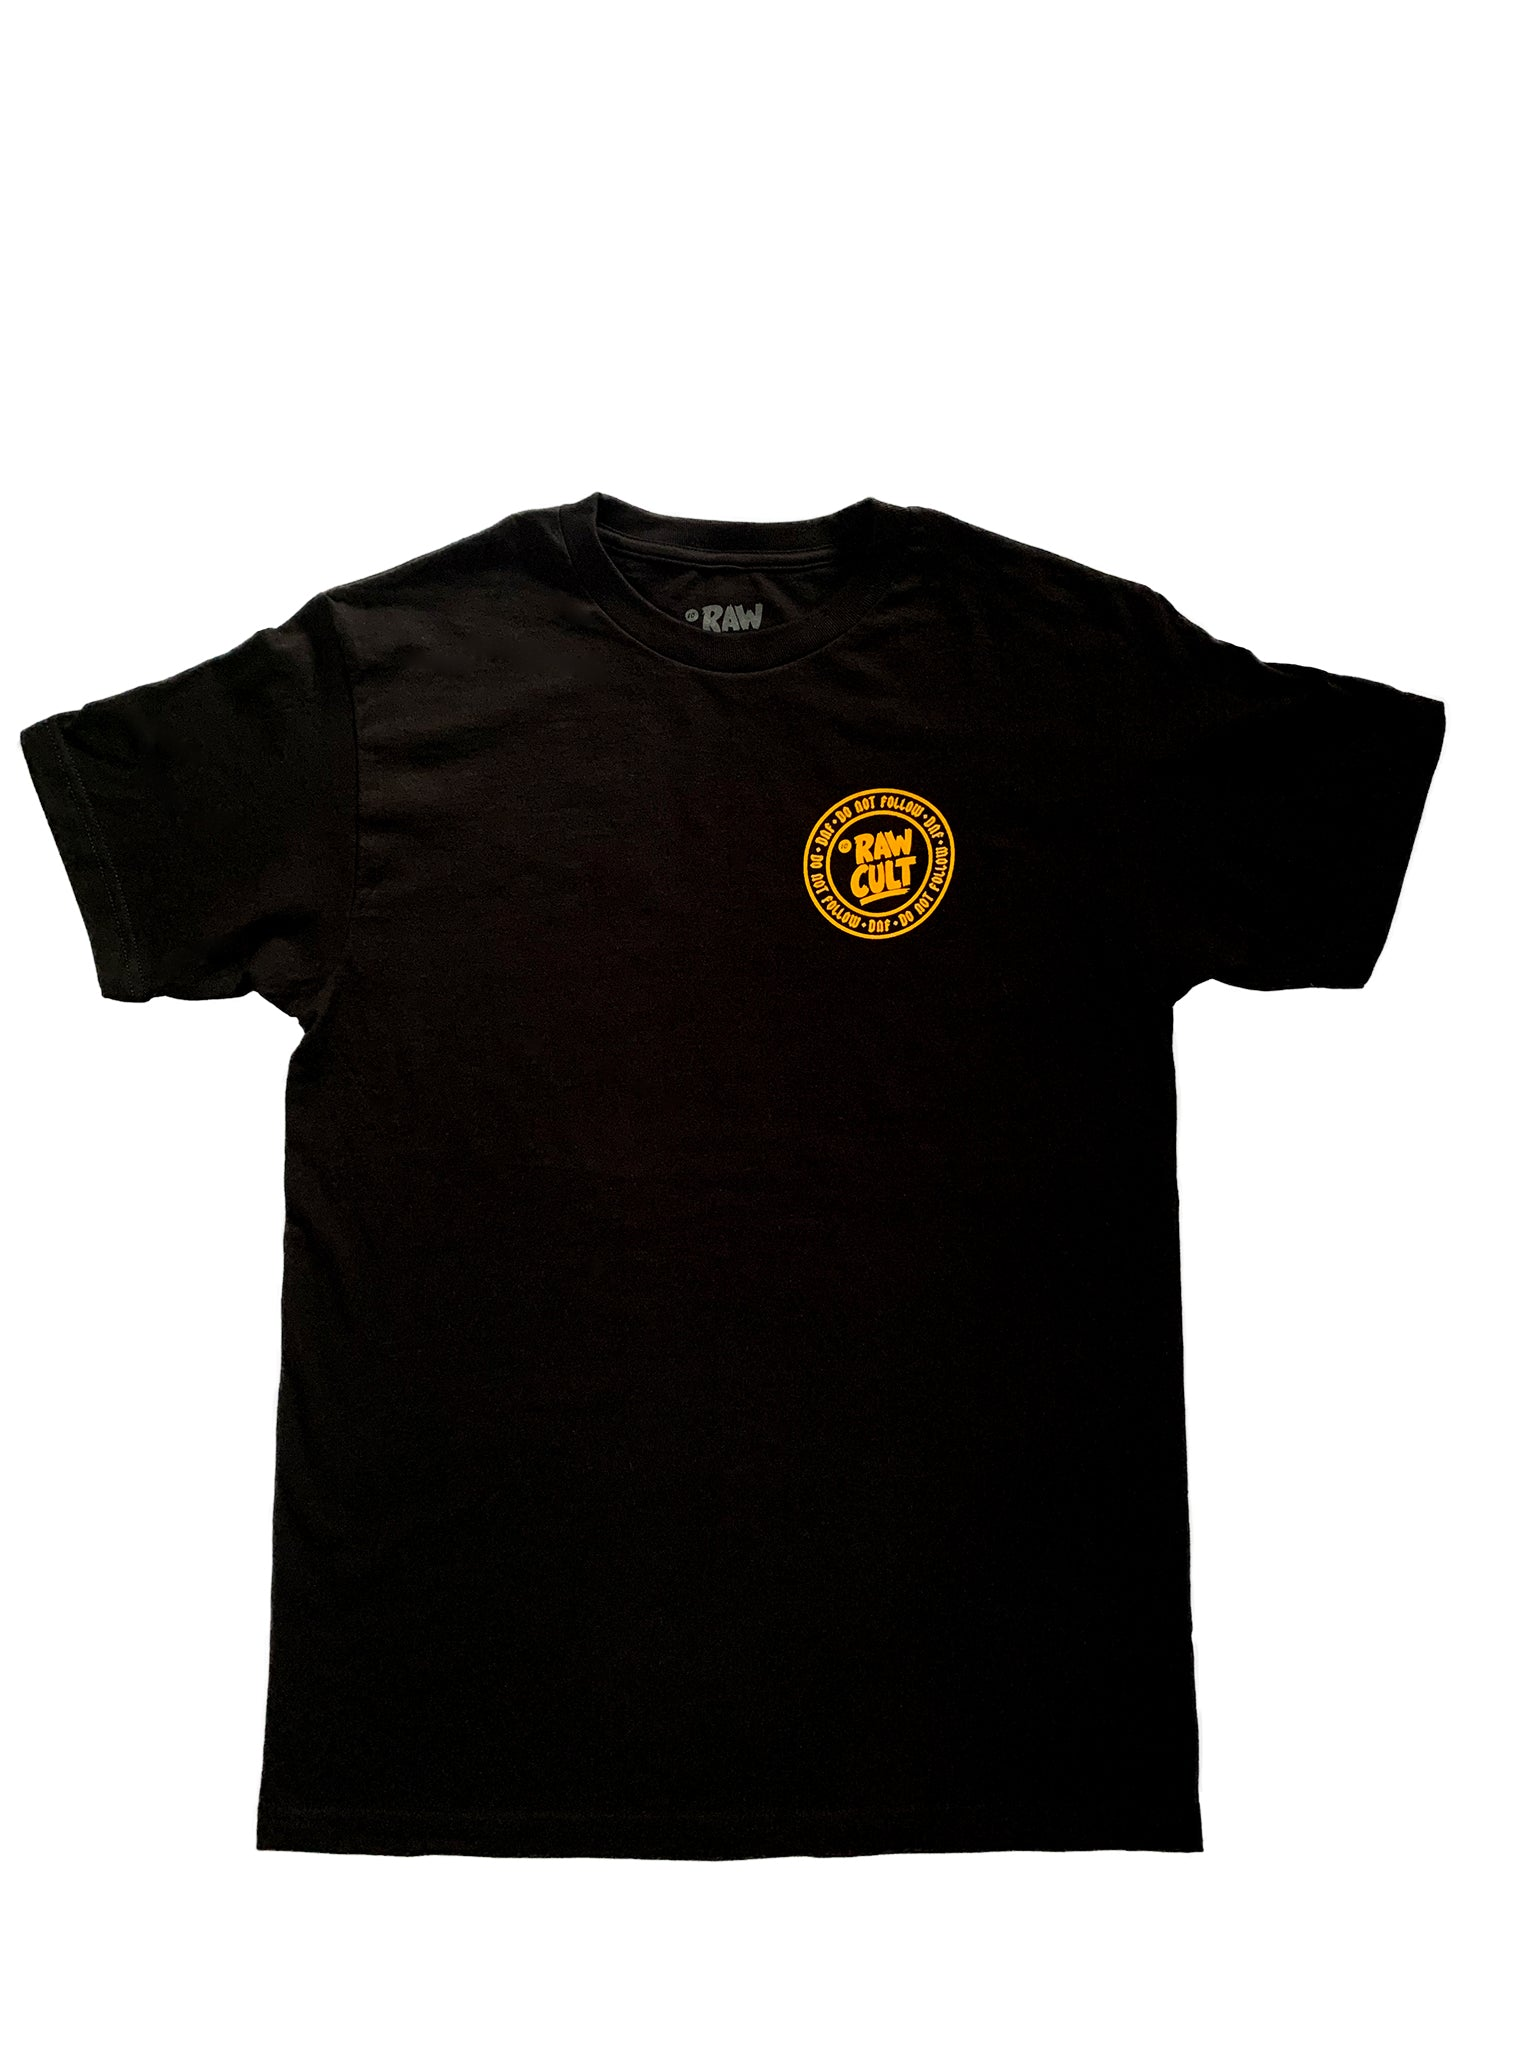 RAW CULT | Do Not Follow/DNF Logo T-Shirt (Black)